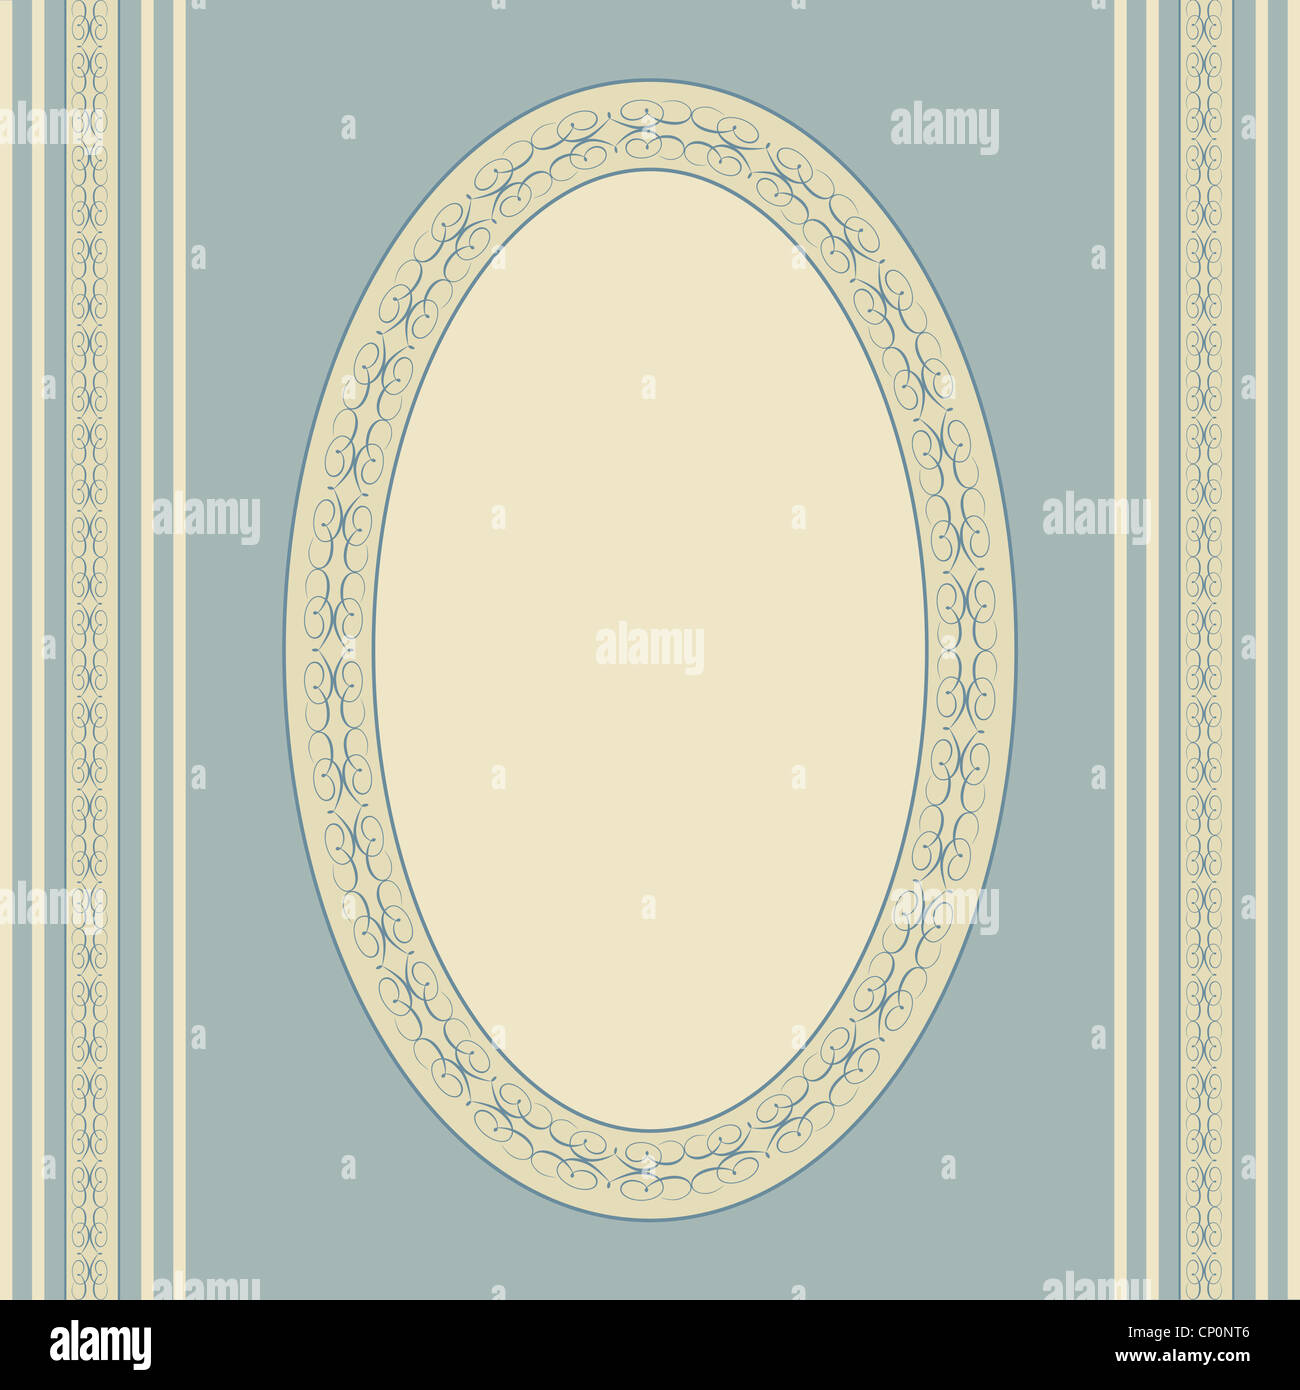 Artistic oval frame on blue with vintage look Stock Photo